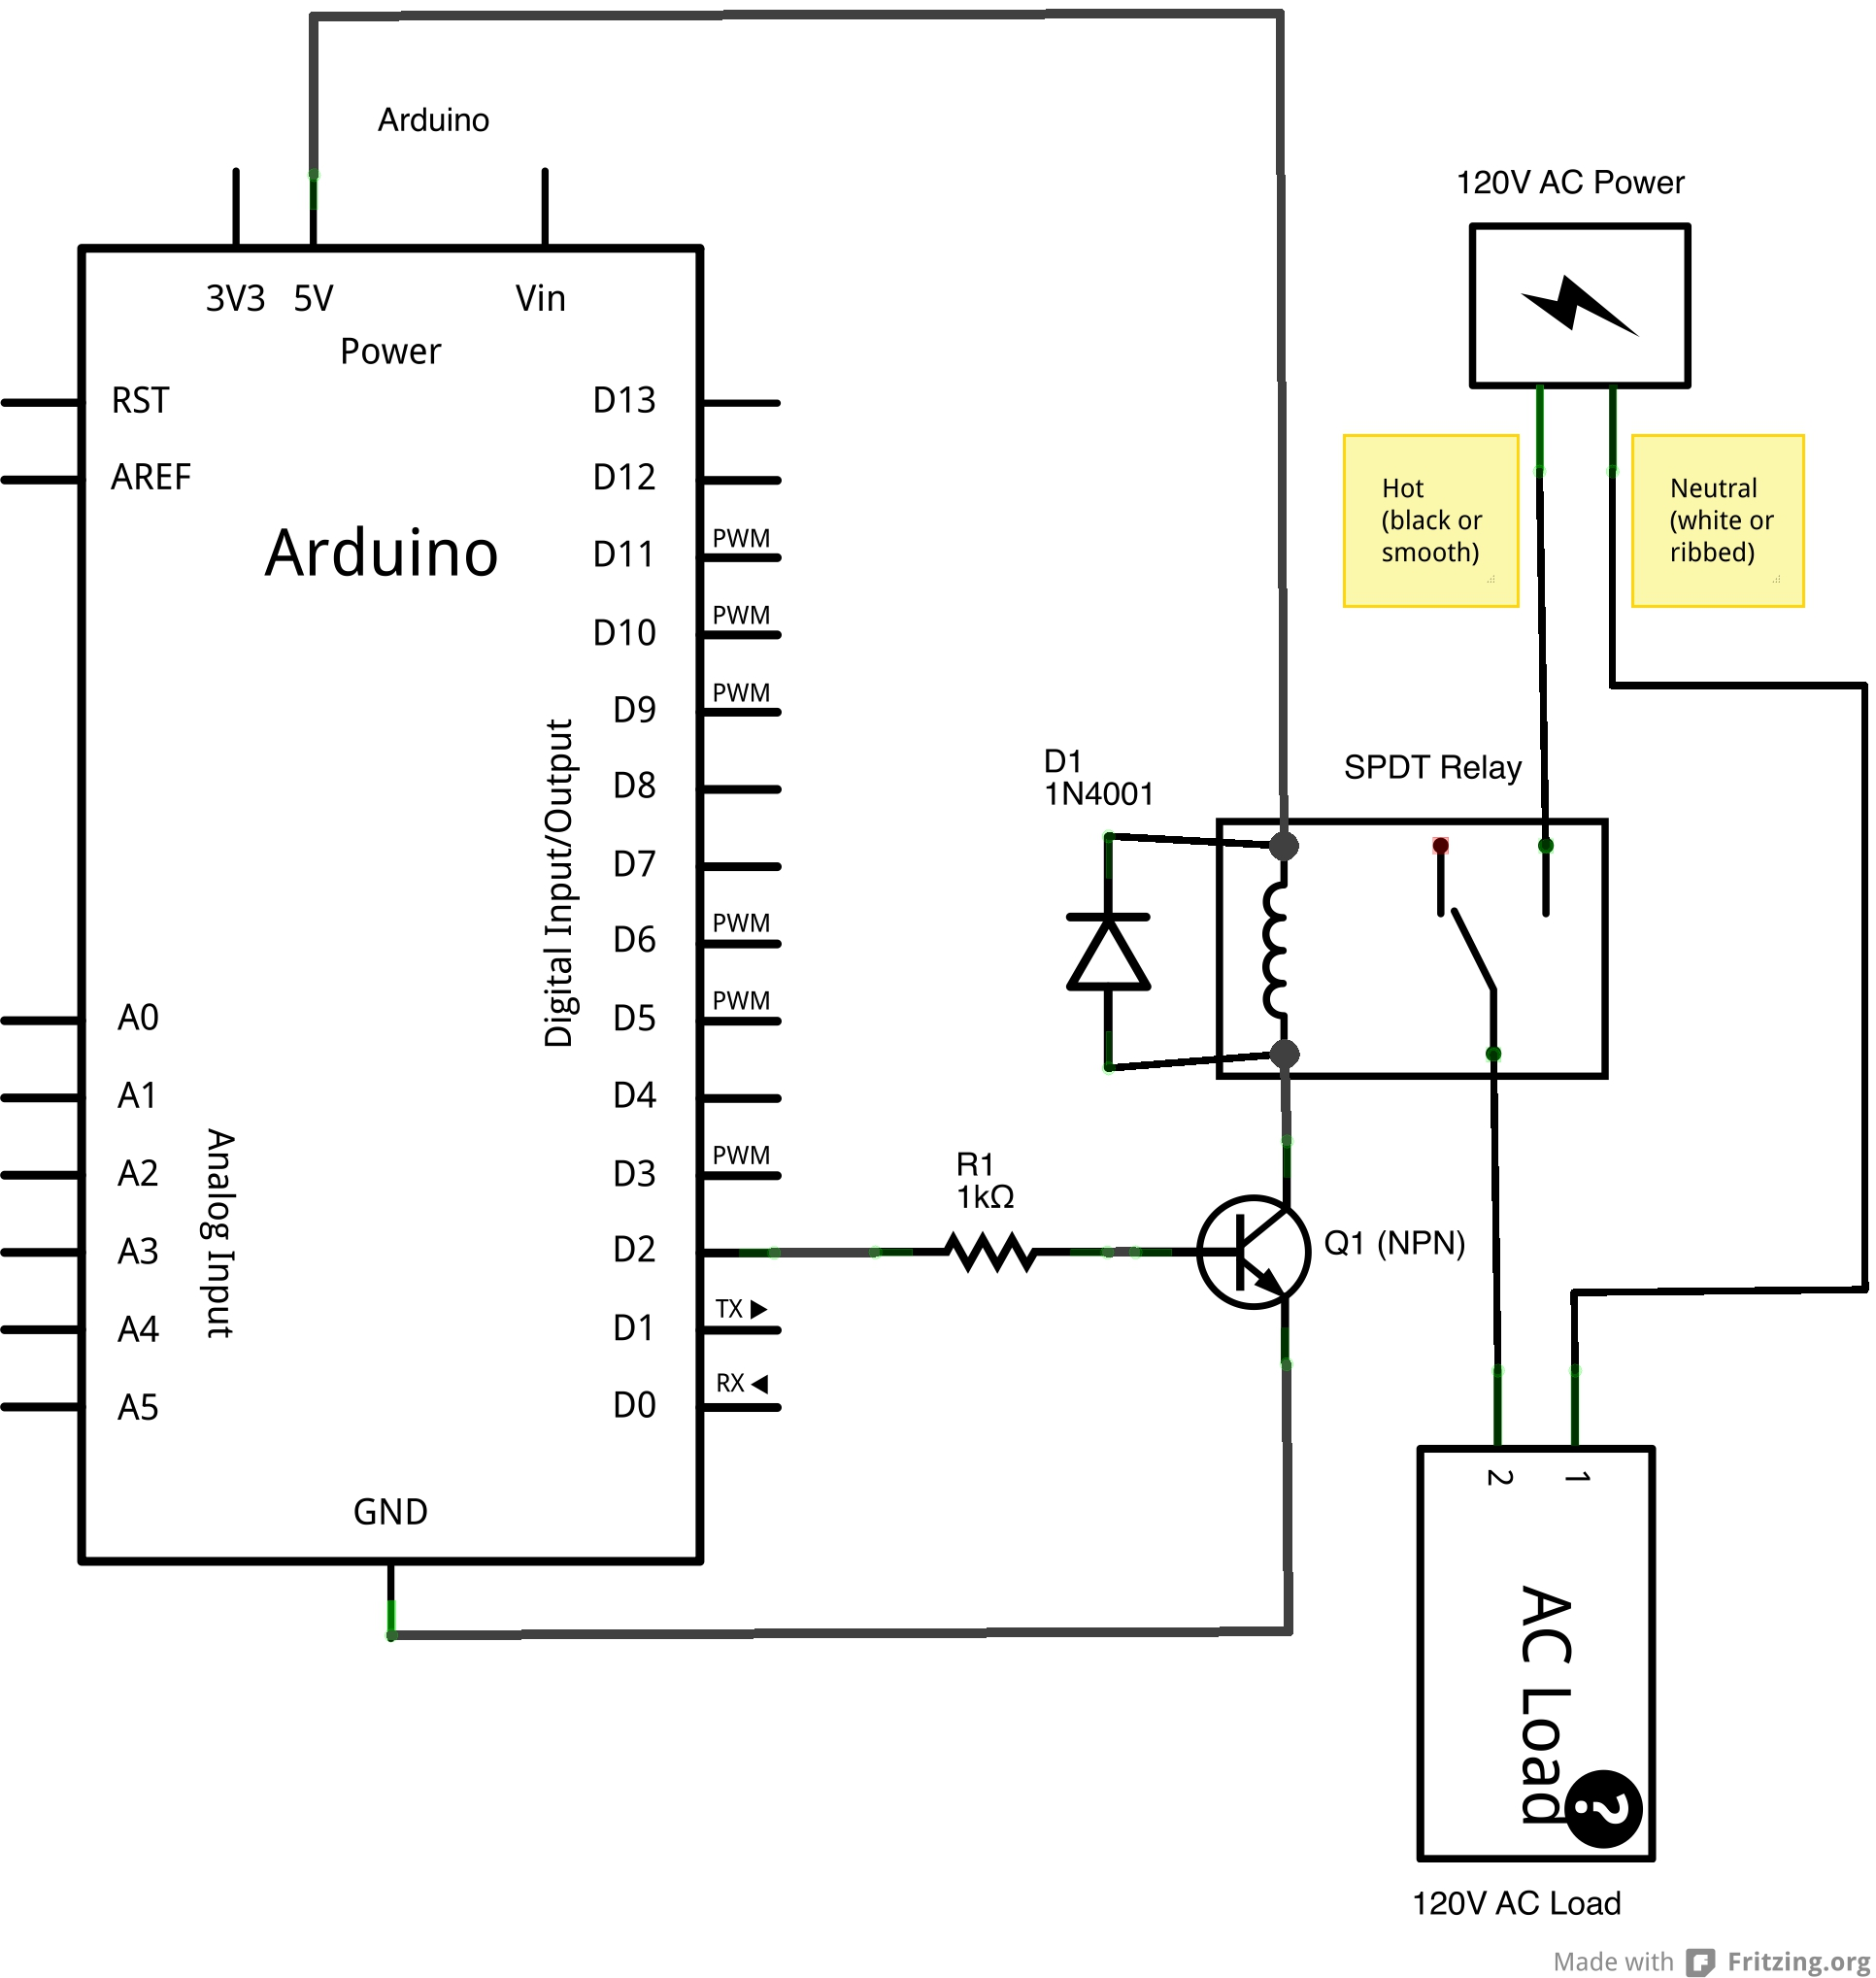 24V Hvac Relay Wiring Diagram from i1.wp.com